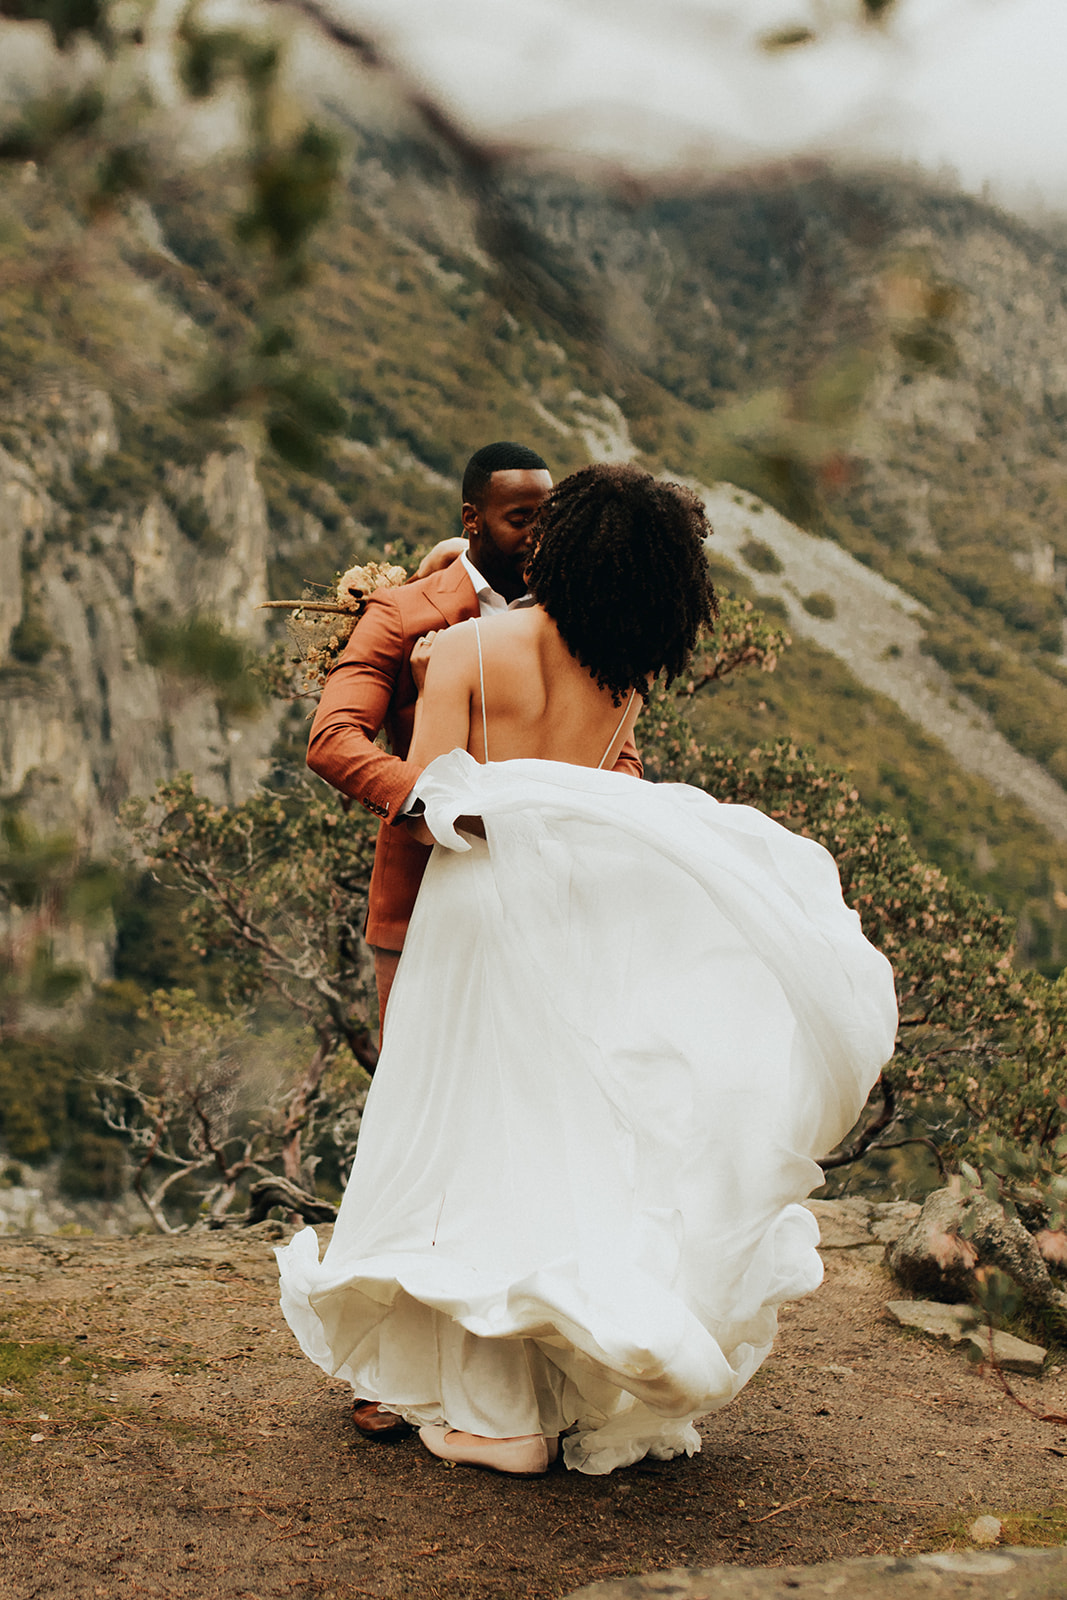 Yosemite_Elopement_Hannah_Alena_Photo_Portland_Wedding_Photographer-87.jpg